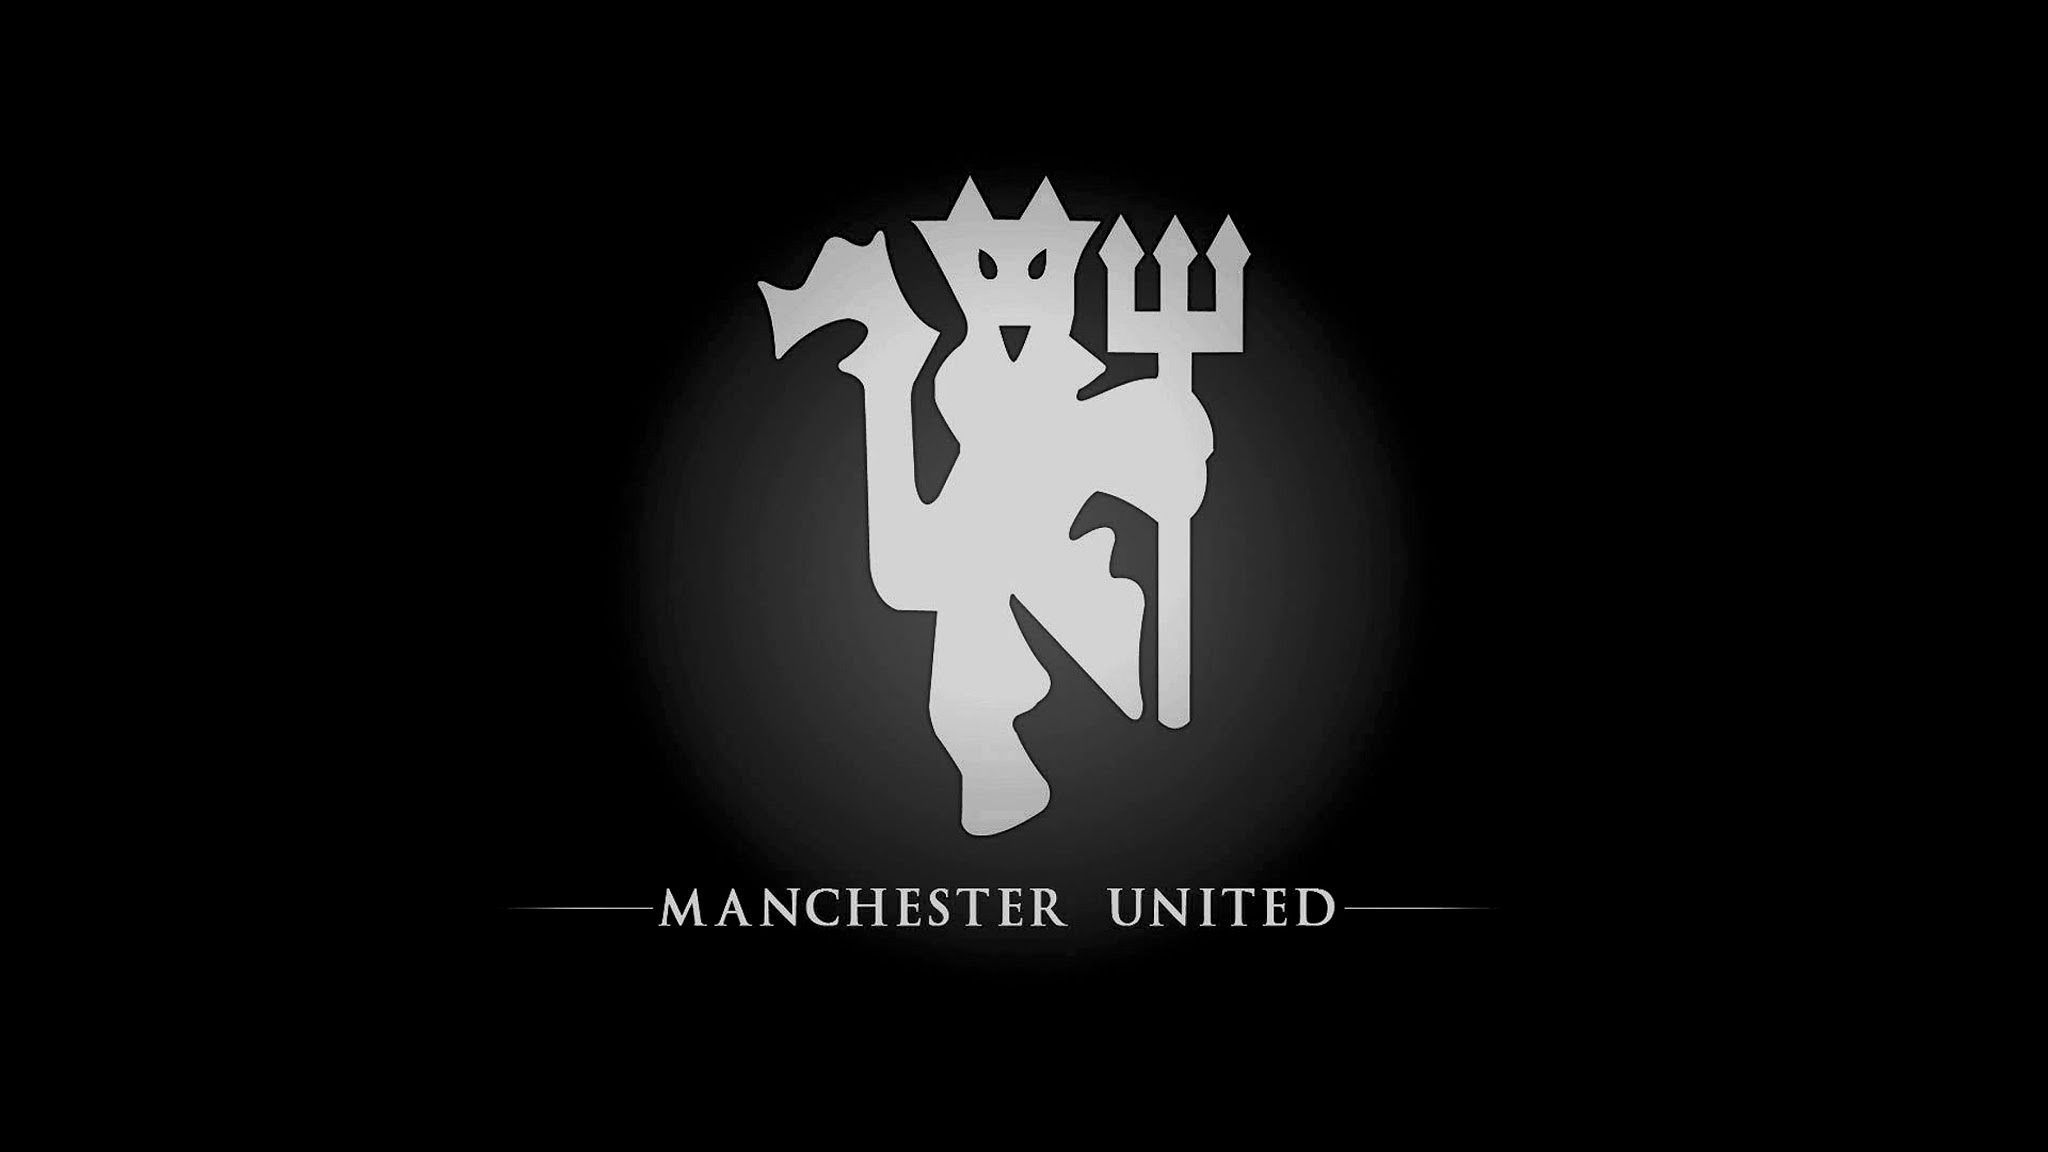 Manchester United Black Wallpaper